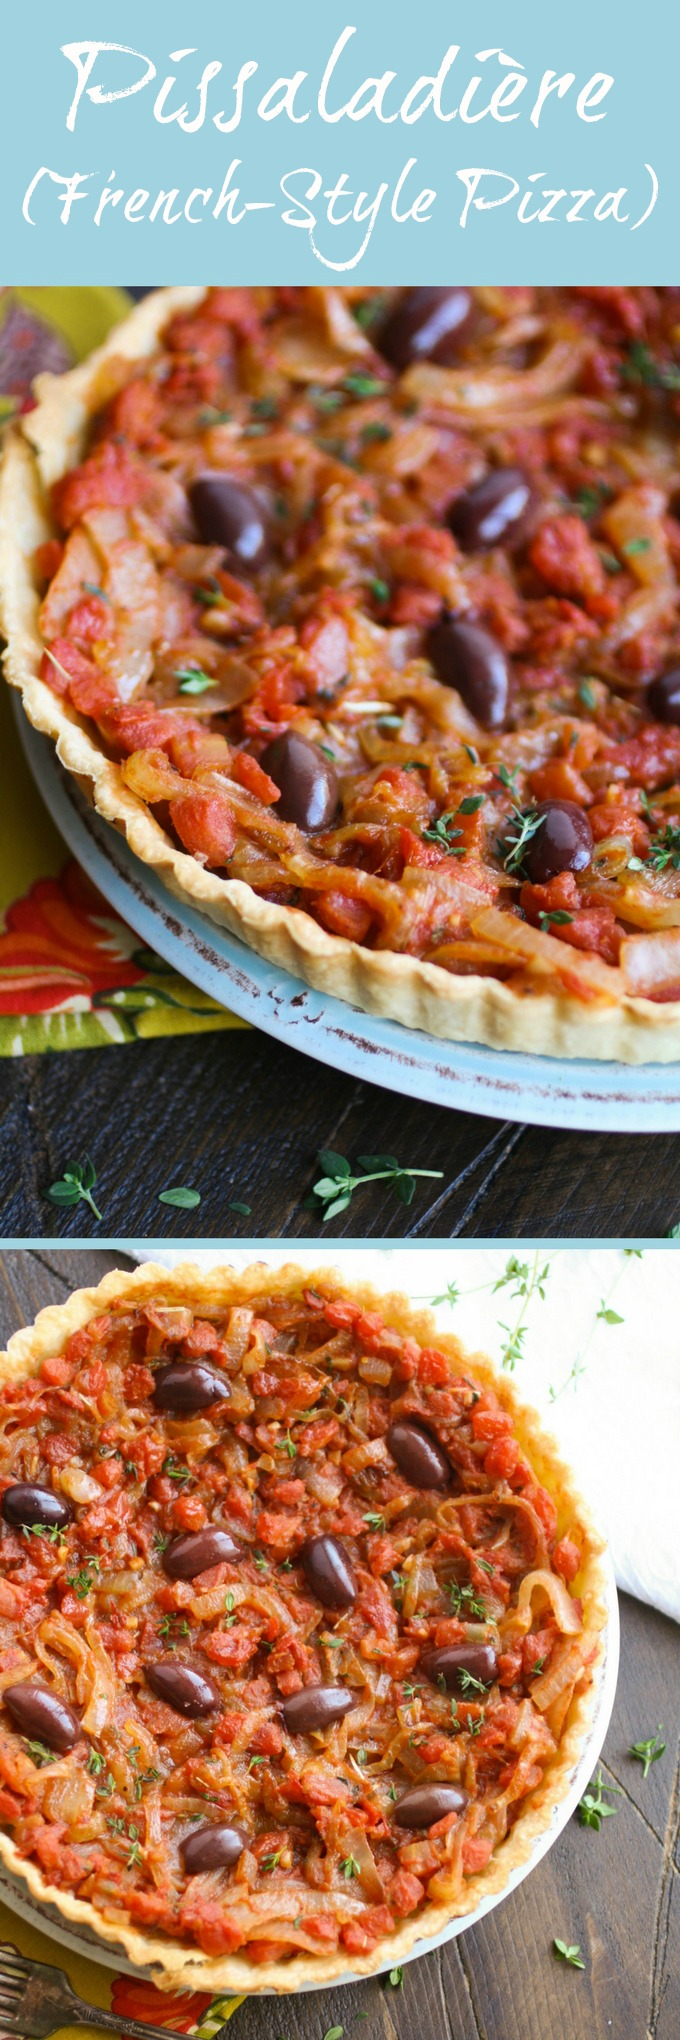 Pissaladière (French-style pizza) should be on the list for your next gathering! This makes a wonderful starter!